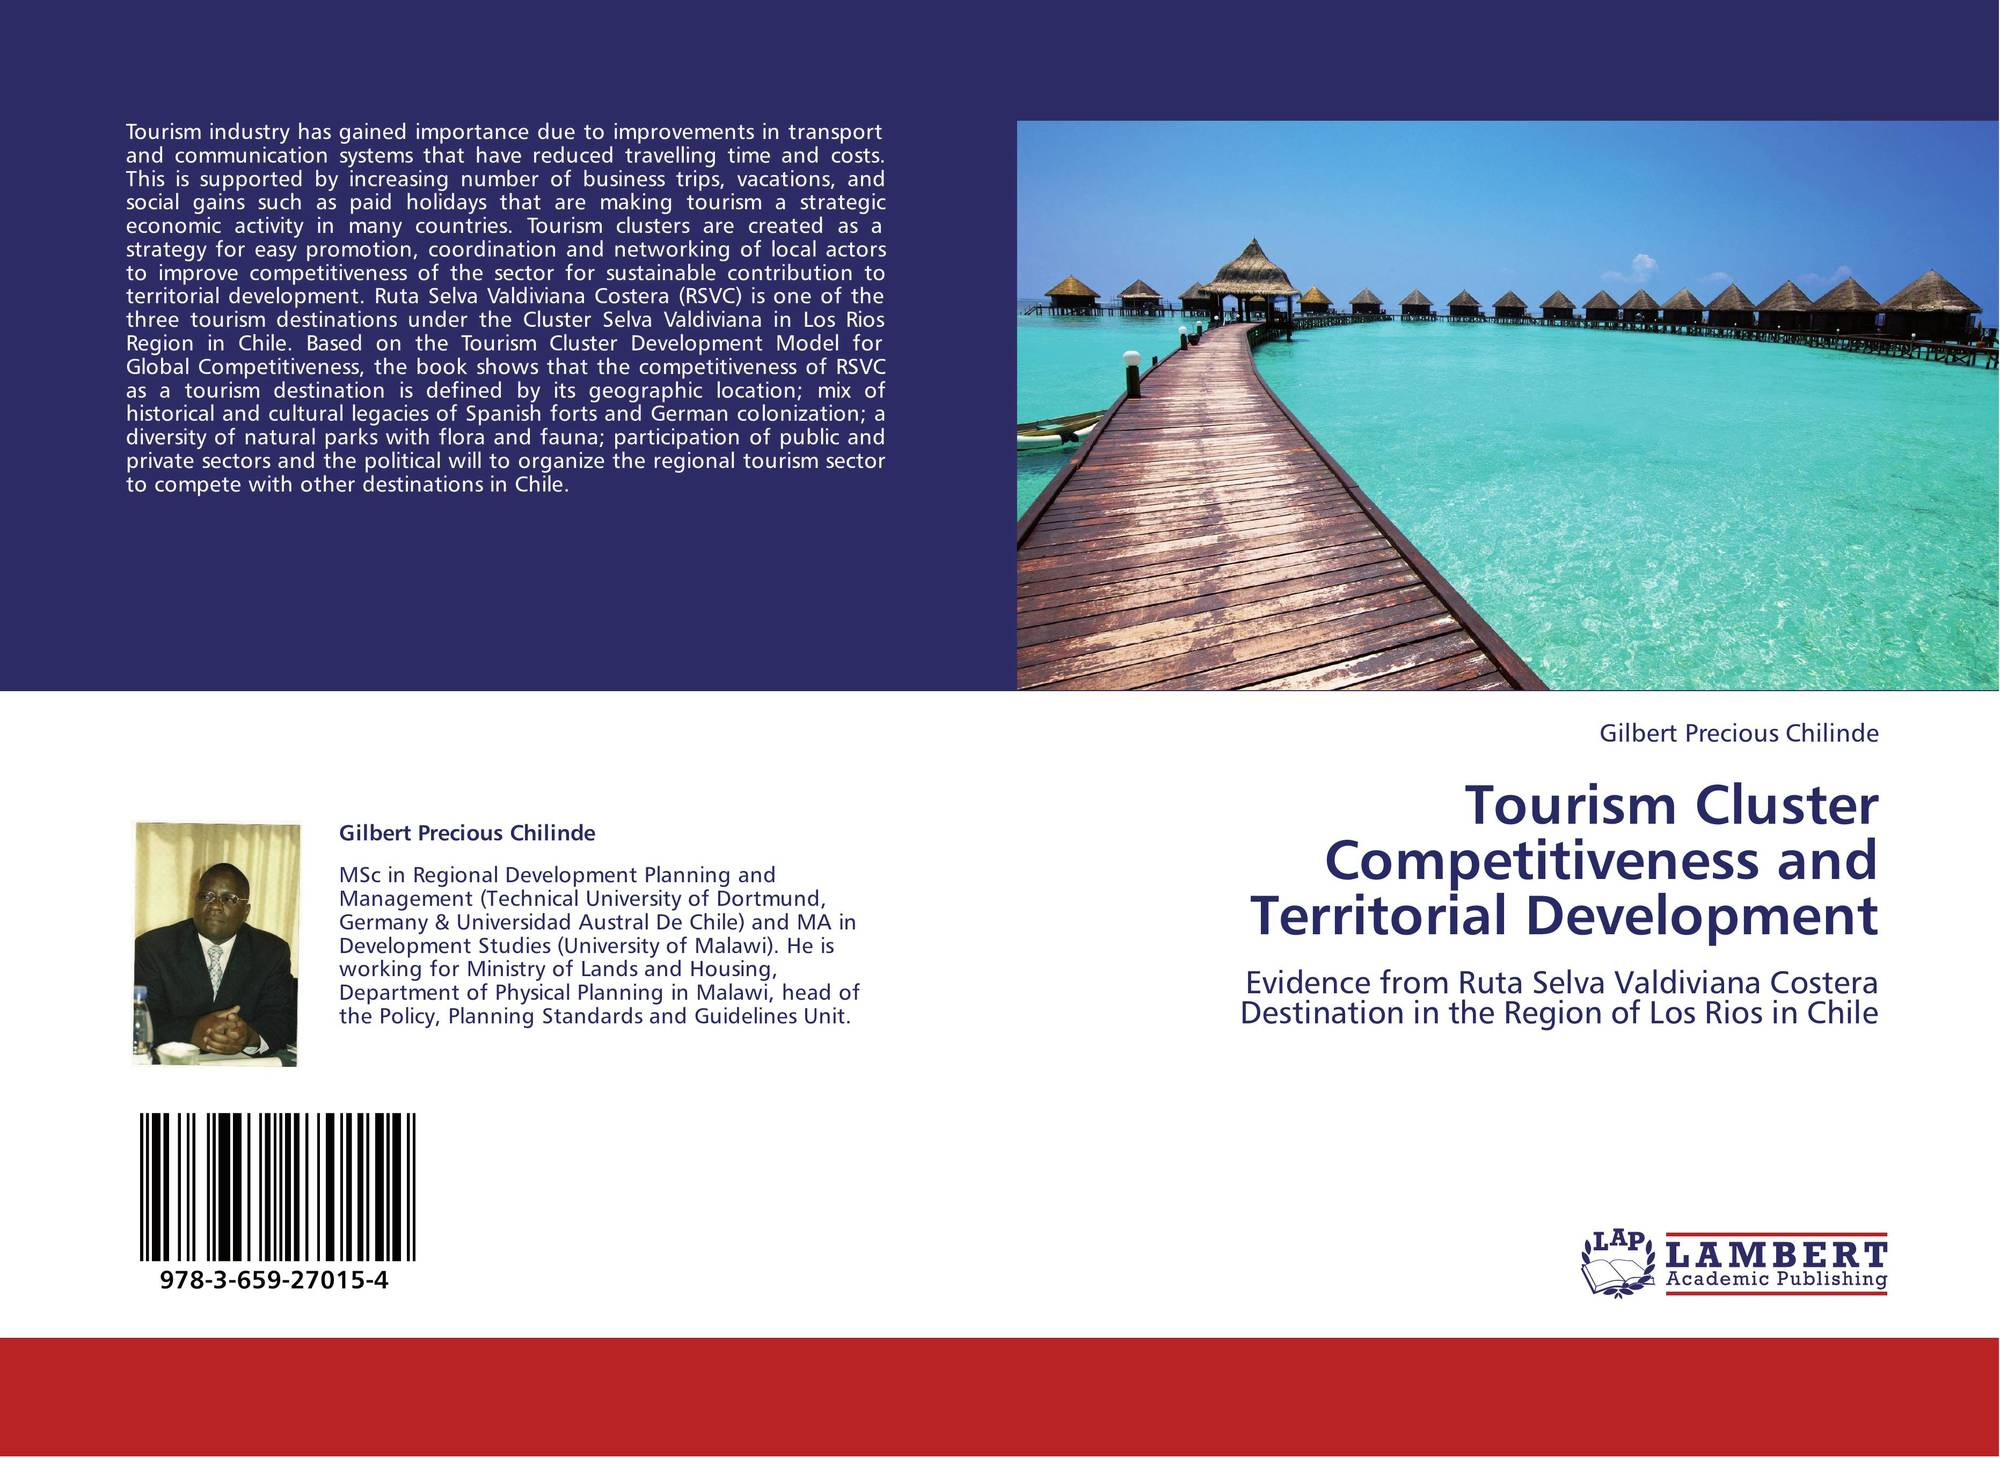 impacts of poor strategic planning competitiveness of tourism industry essay Long-range planning, strategic planning is generally considered to place a greater emphasis on strategies – on how the organization will achieve its vision – while long-range planning places greater emphasis on determining the vision.